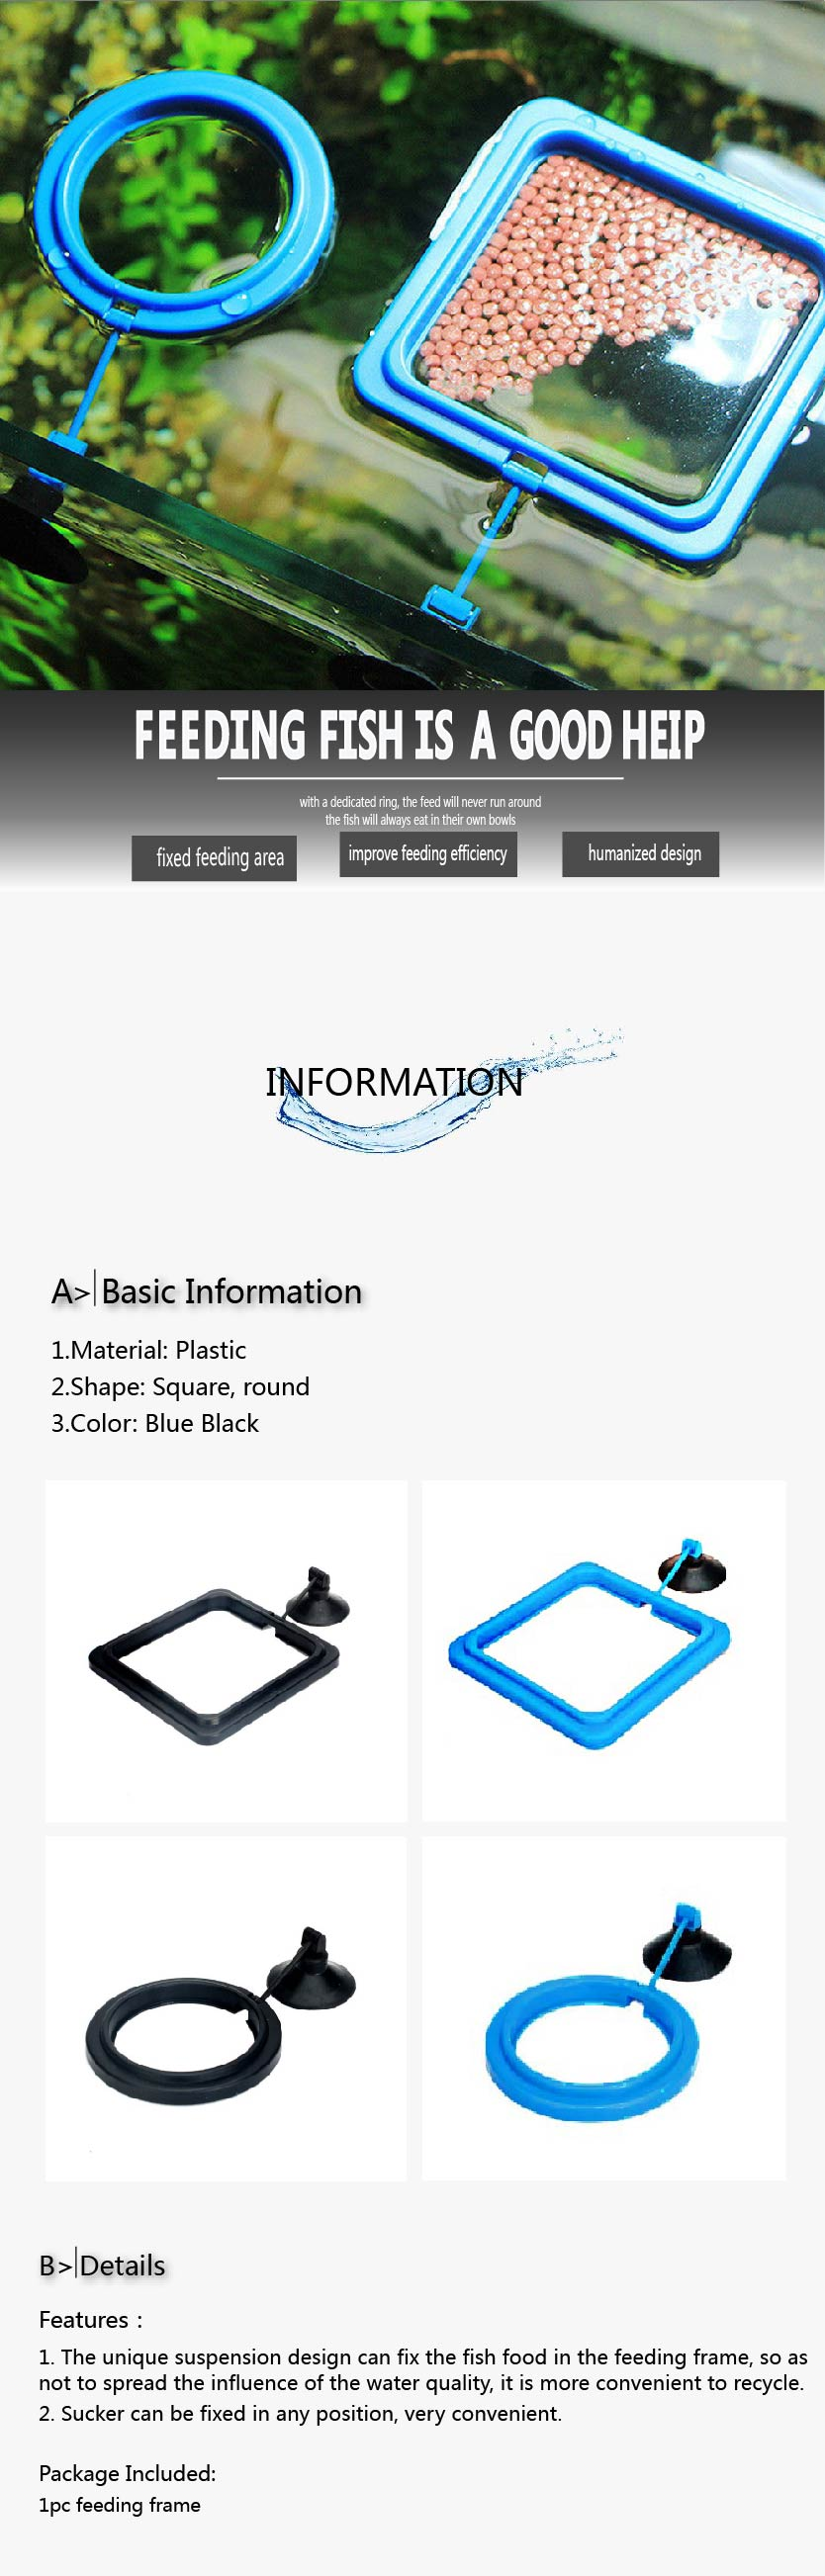 New Aquarium Feeding Ring Fish Tank Station Floating Food Tray Feeder Square Circle Accessory Water Plant Buoyancy Suction Cup 2 7